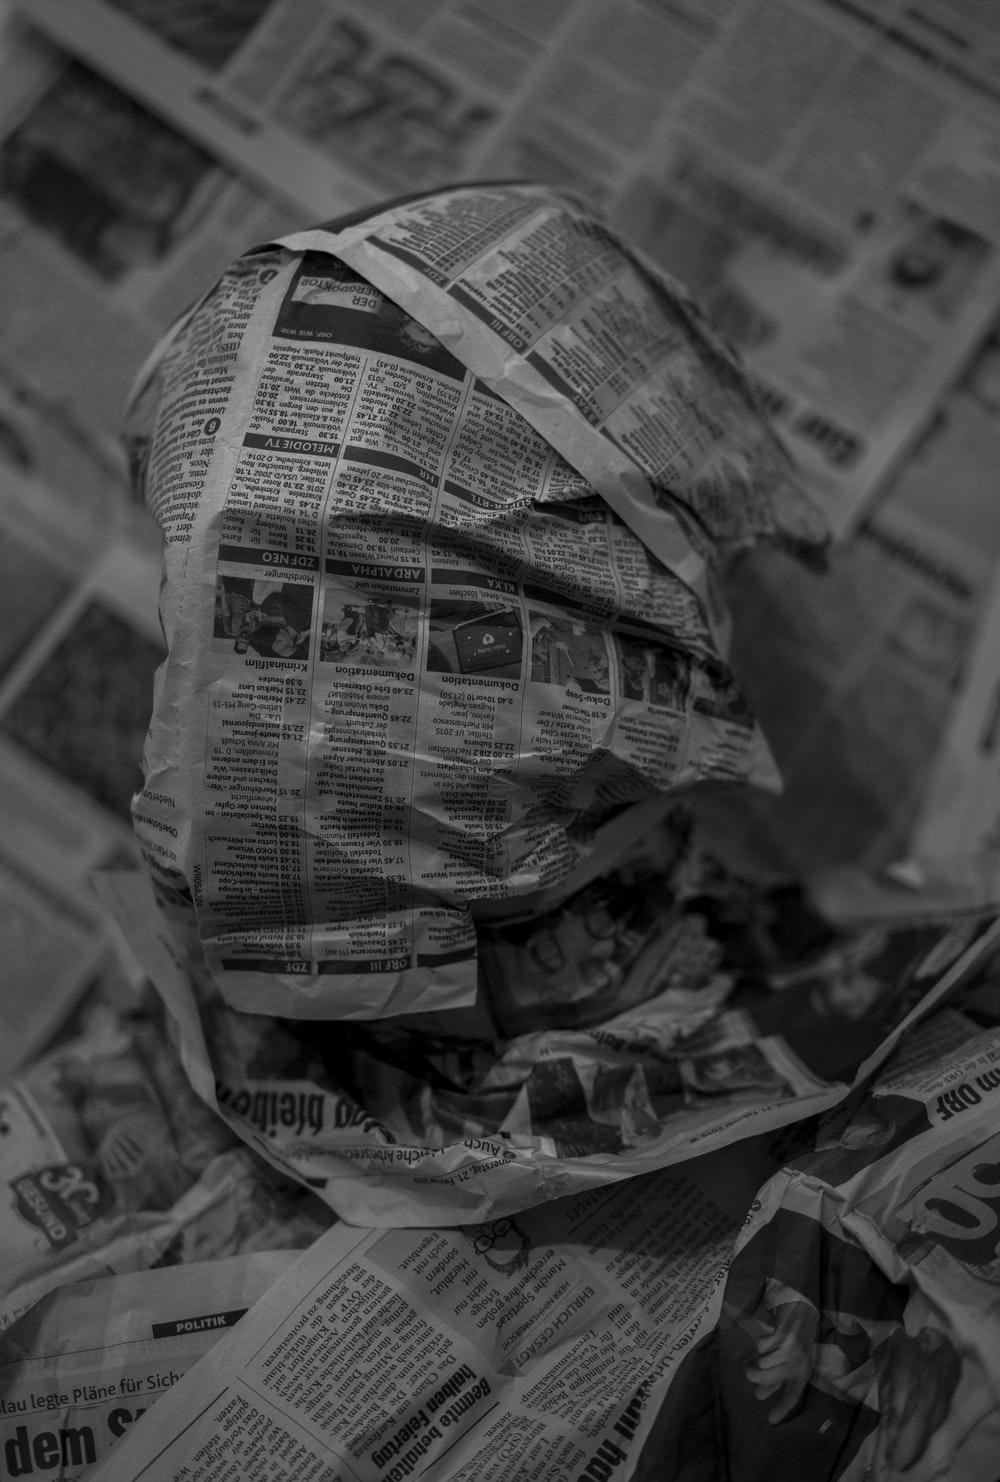 grayscale photo of a newspaper